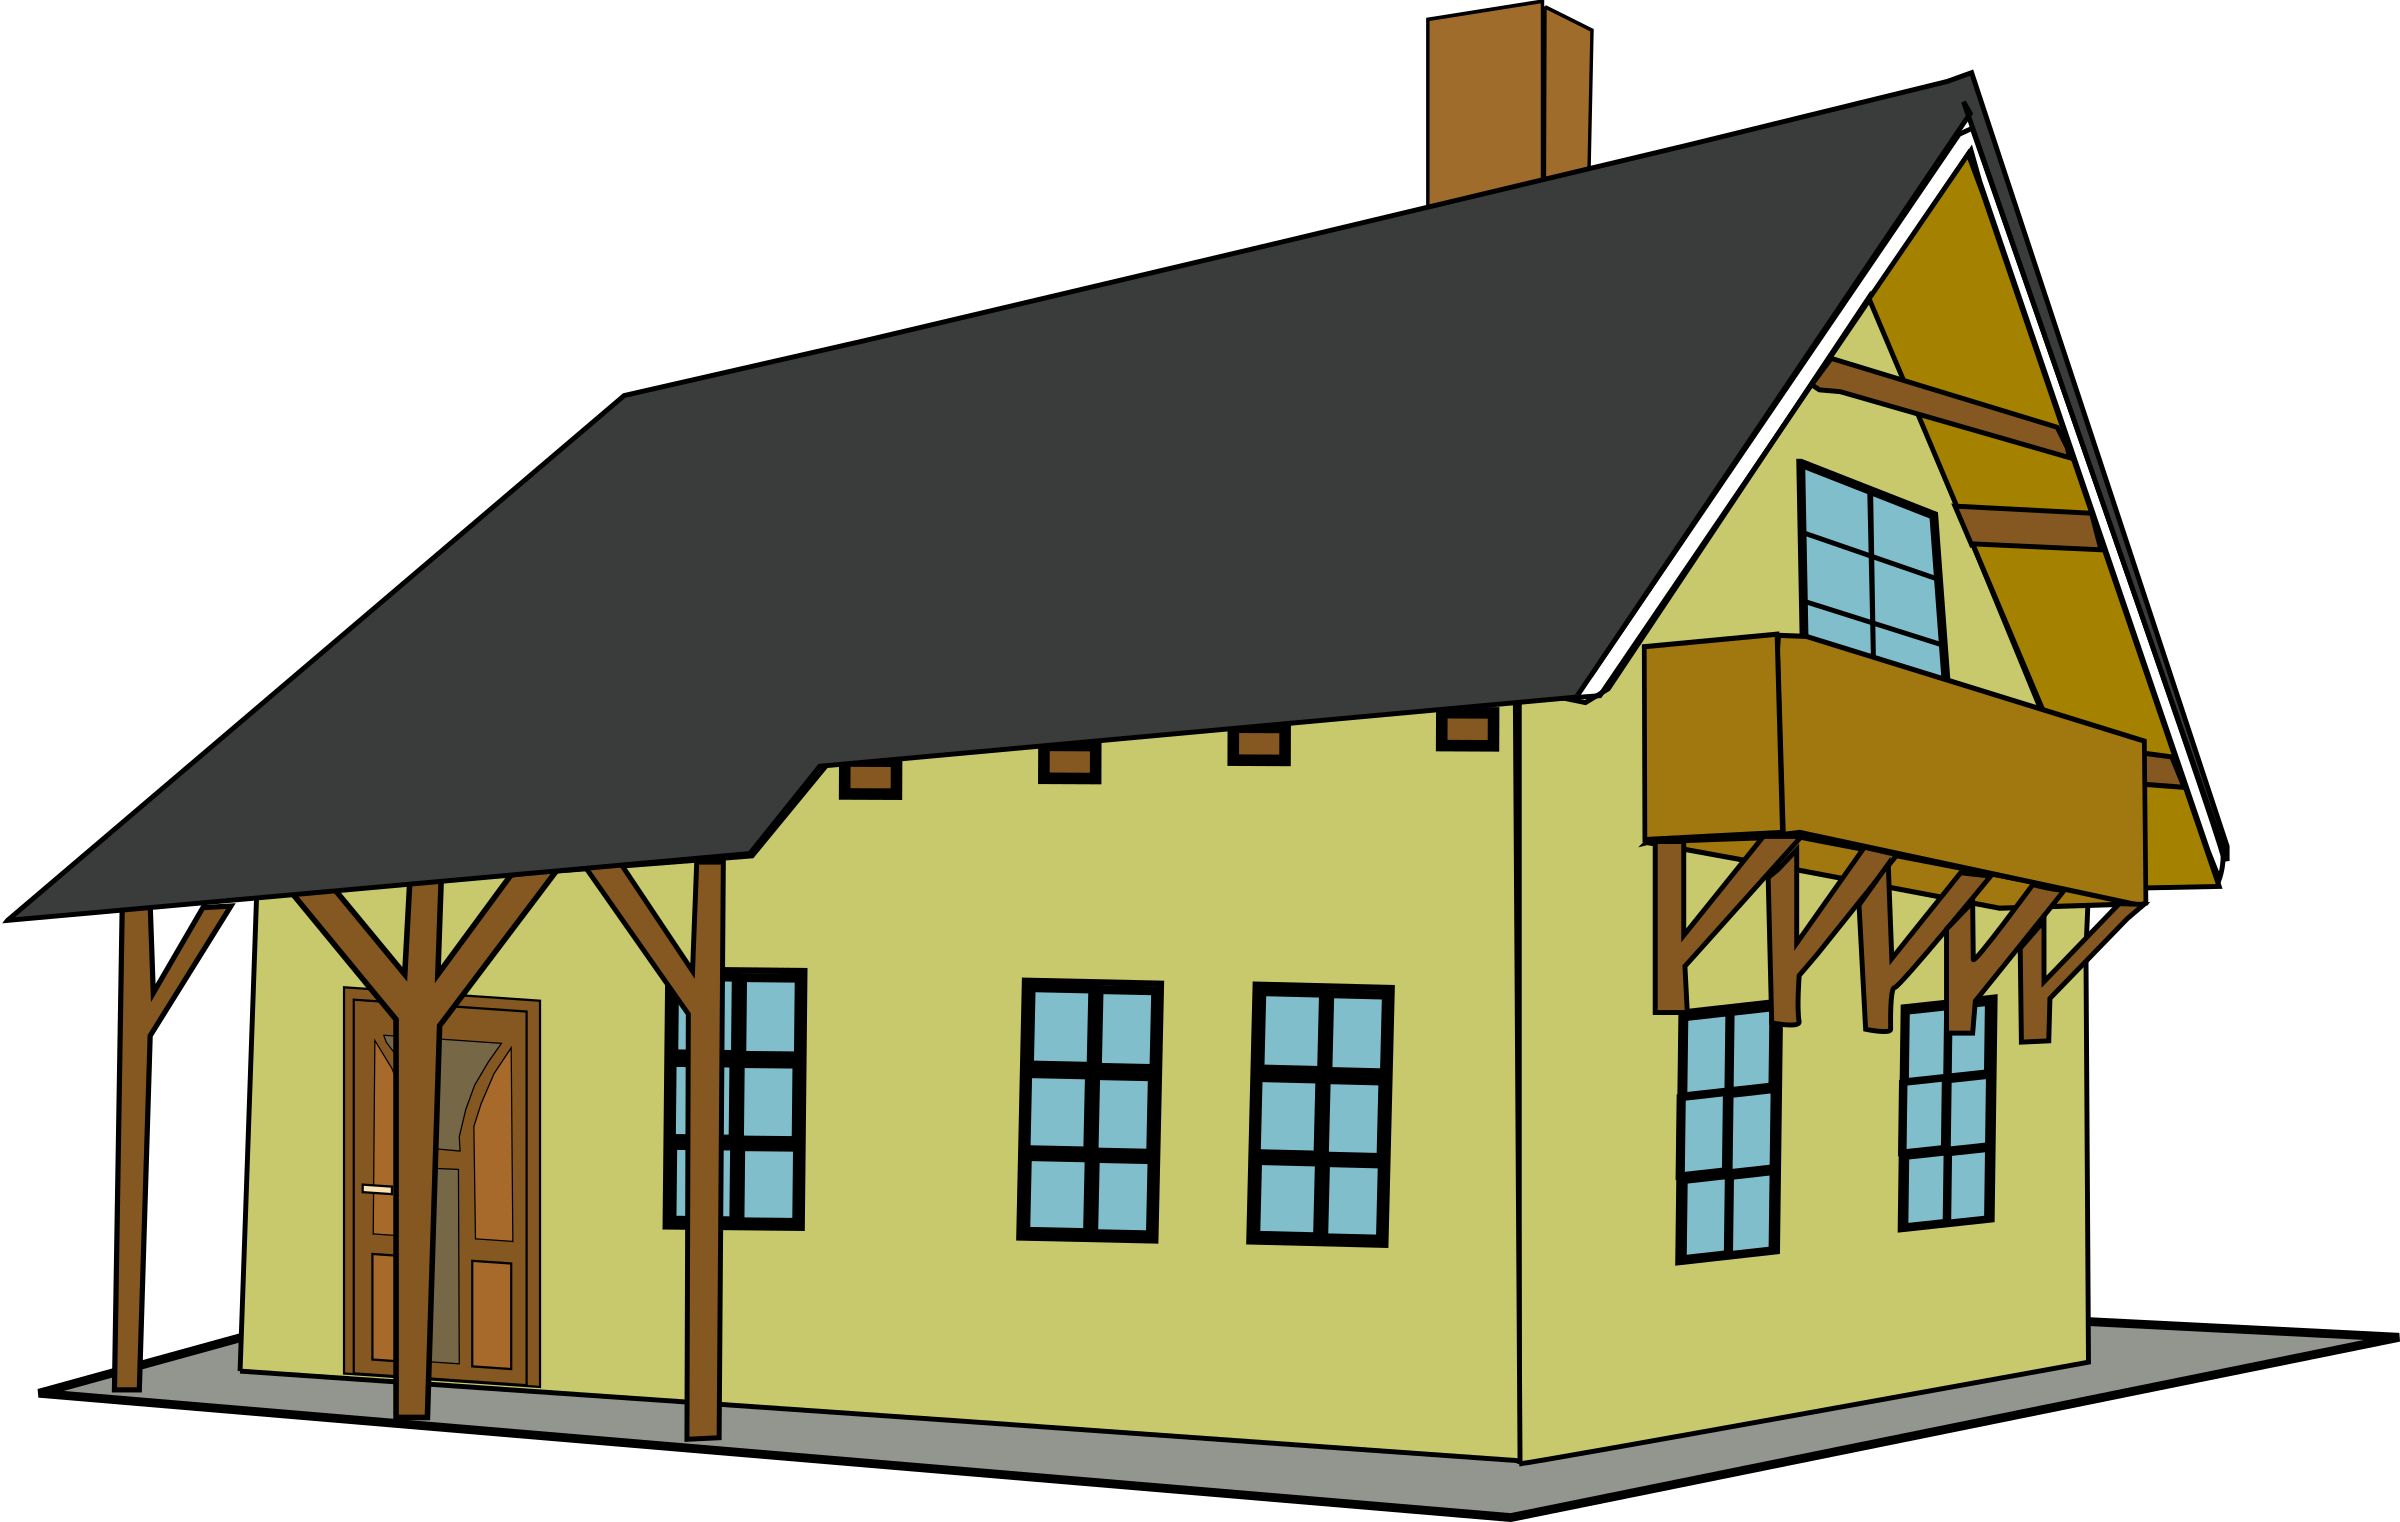 Nice house clipart png royalty free Clipart - House 1 png royalty free